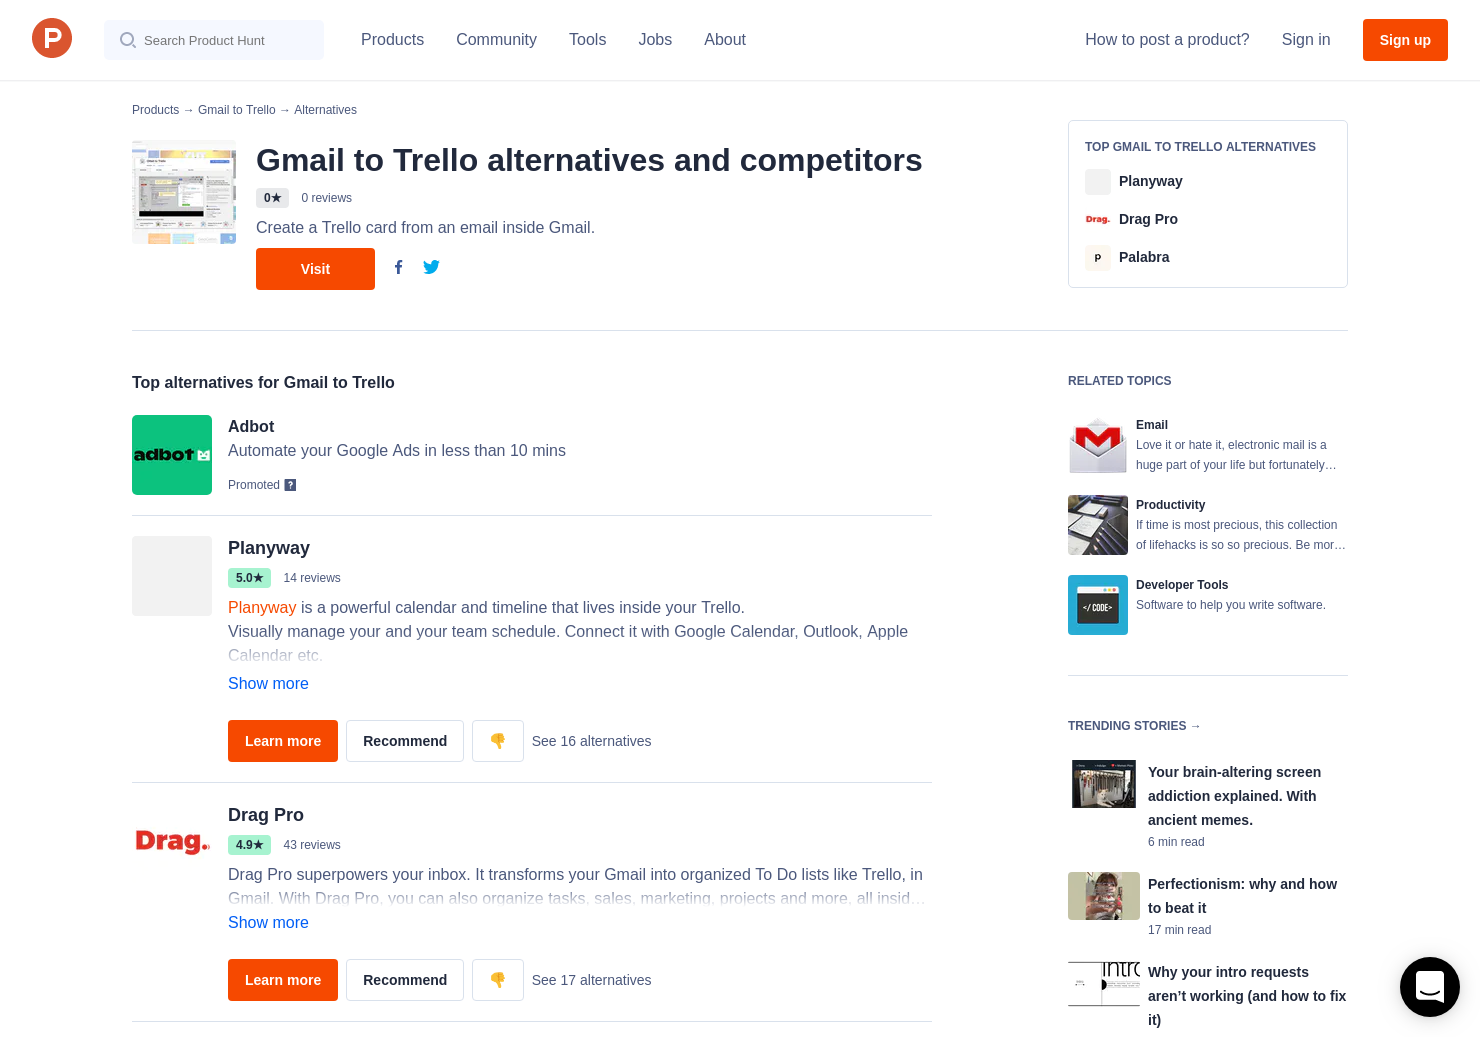 10 Alternatives to Gmail to Trello | Product Hunt